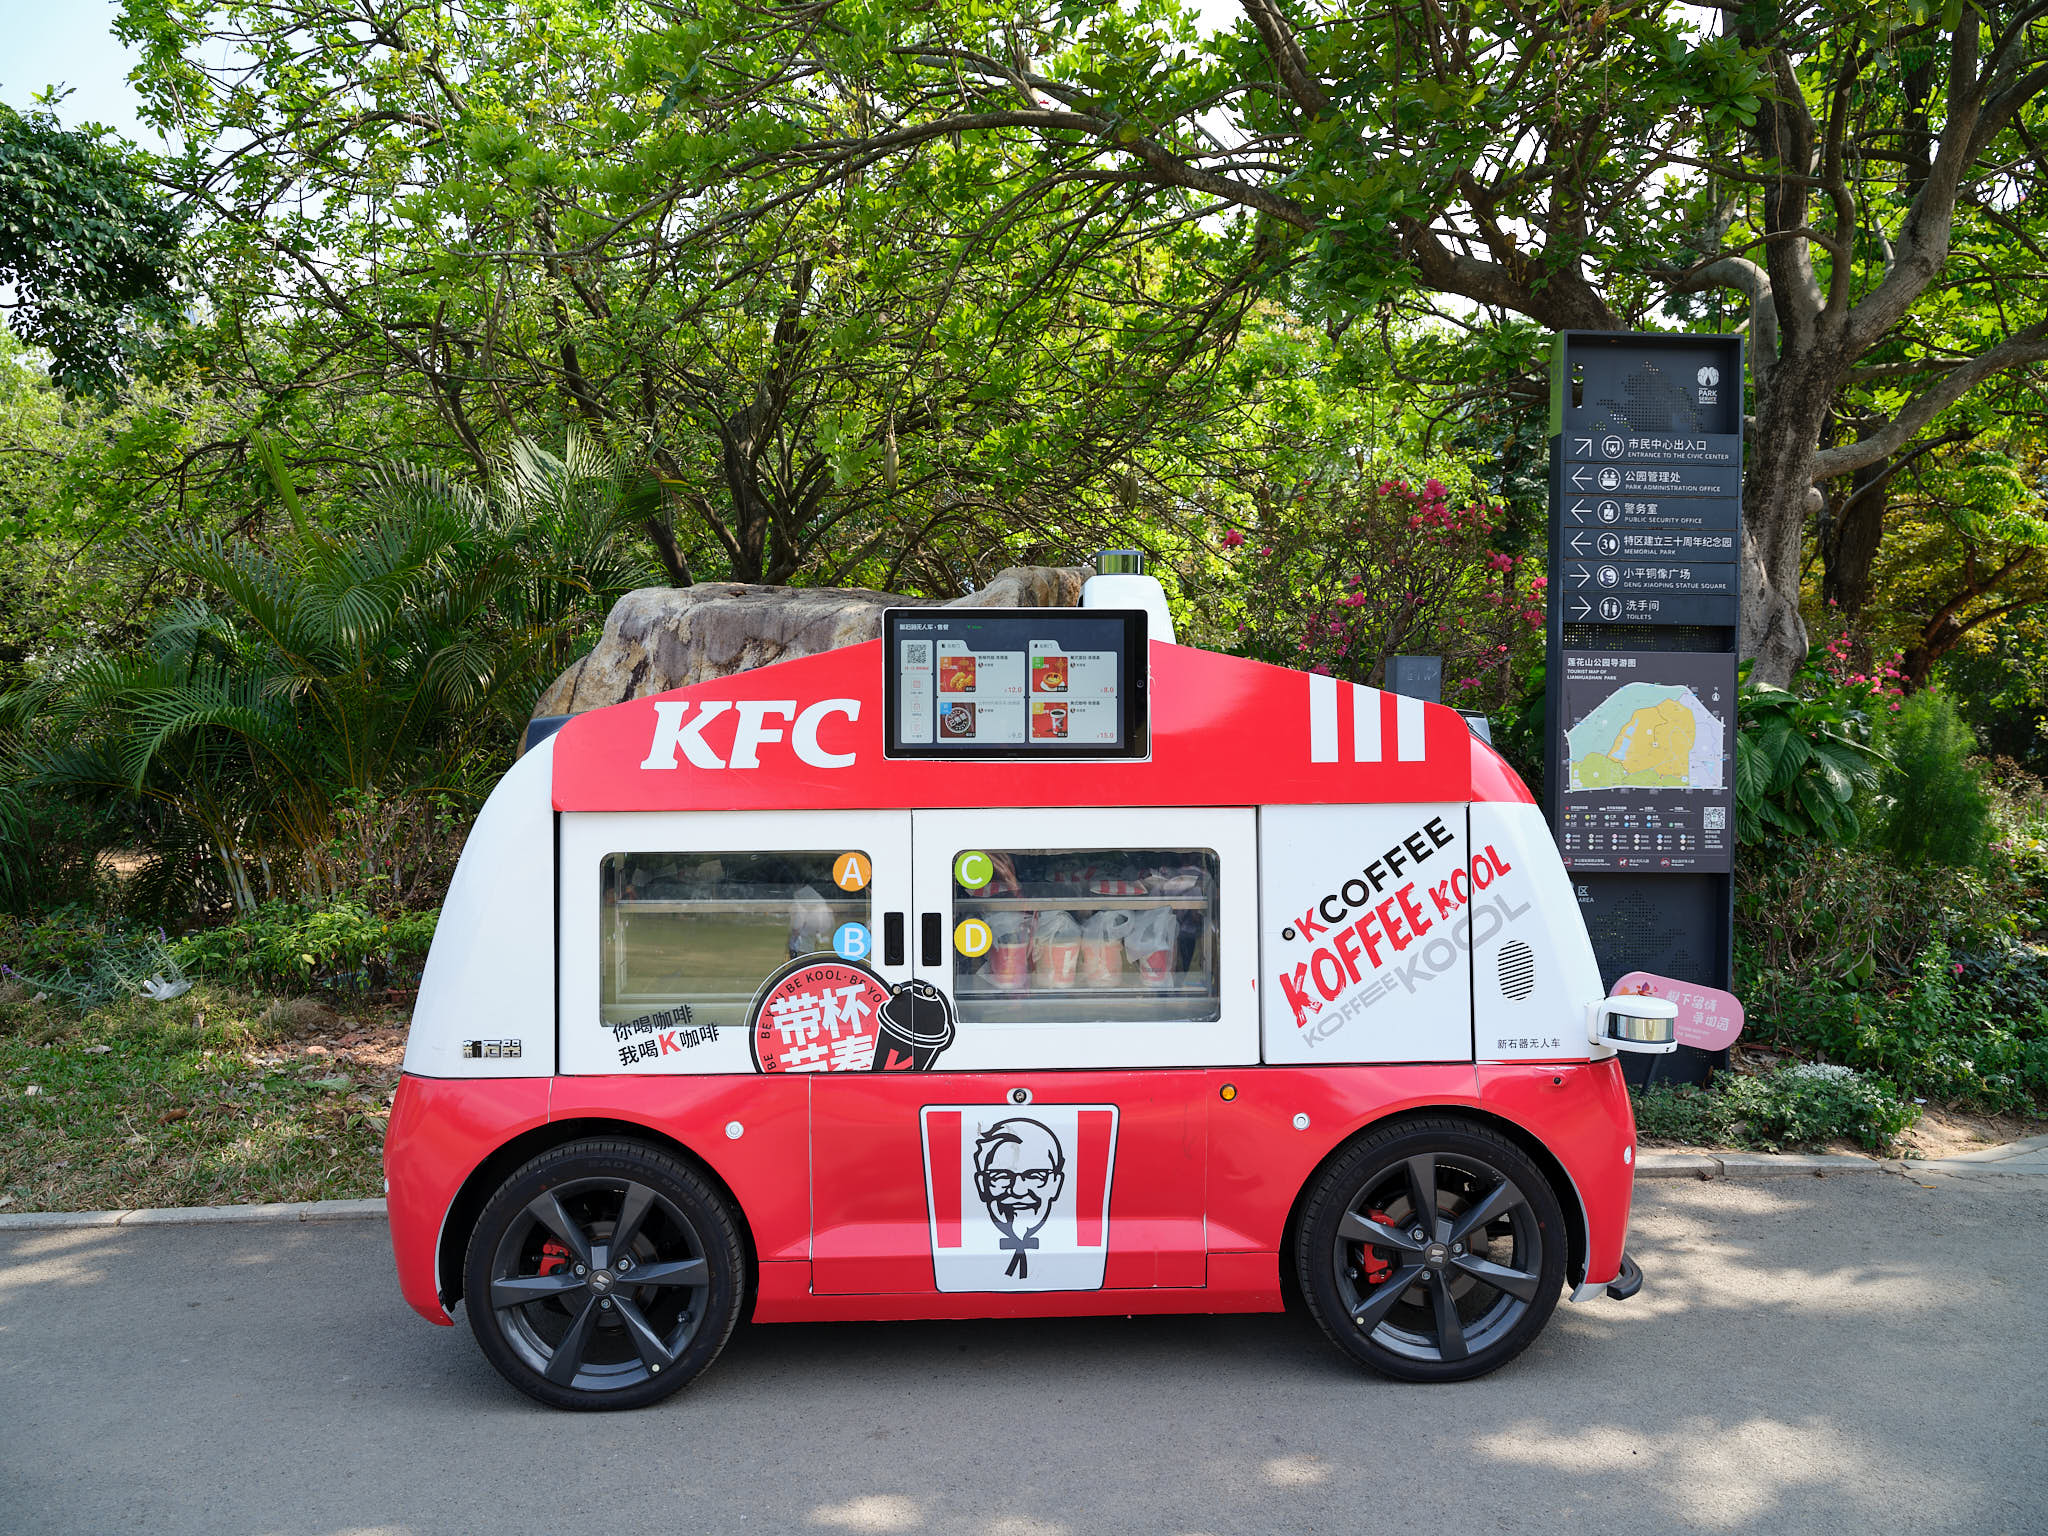 KFC automated food delivery in Shenzhen